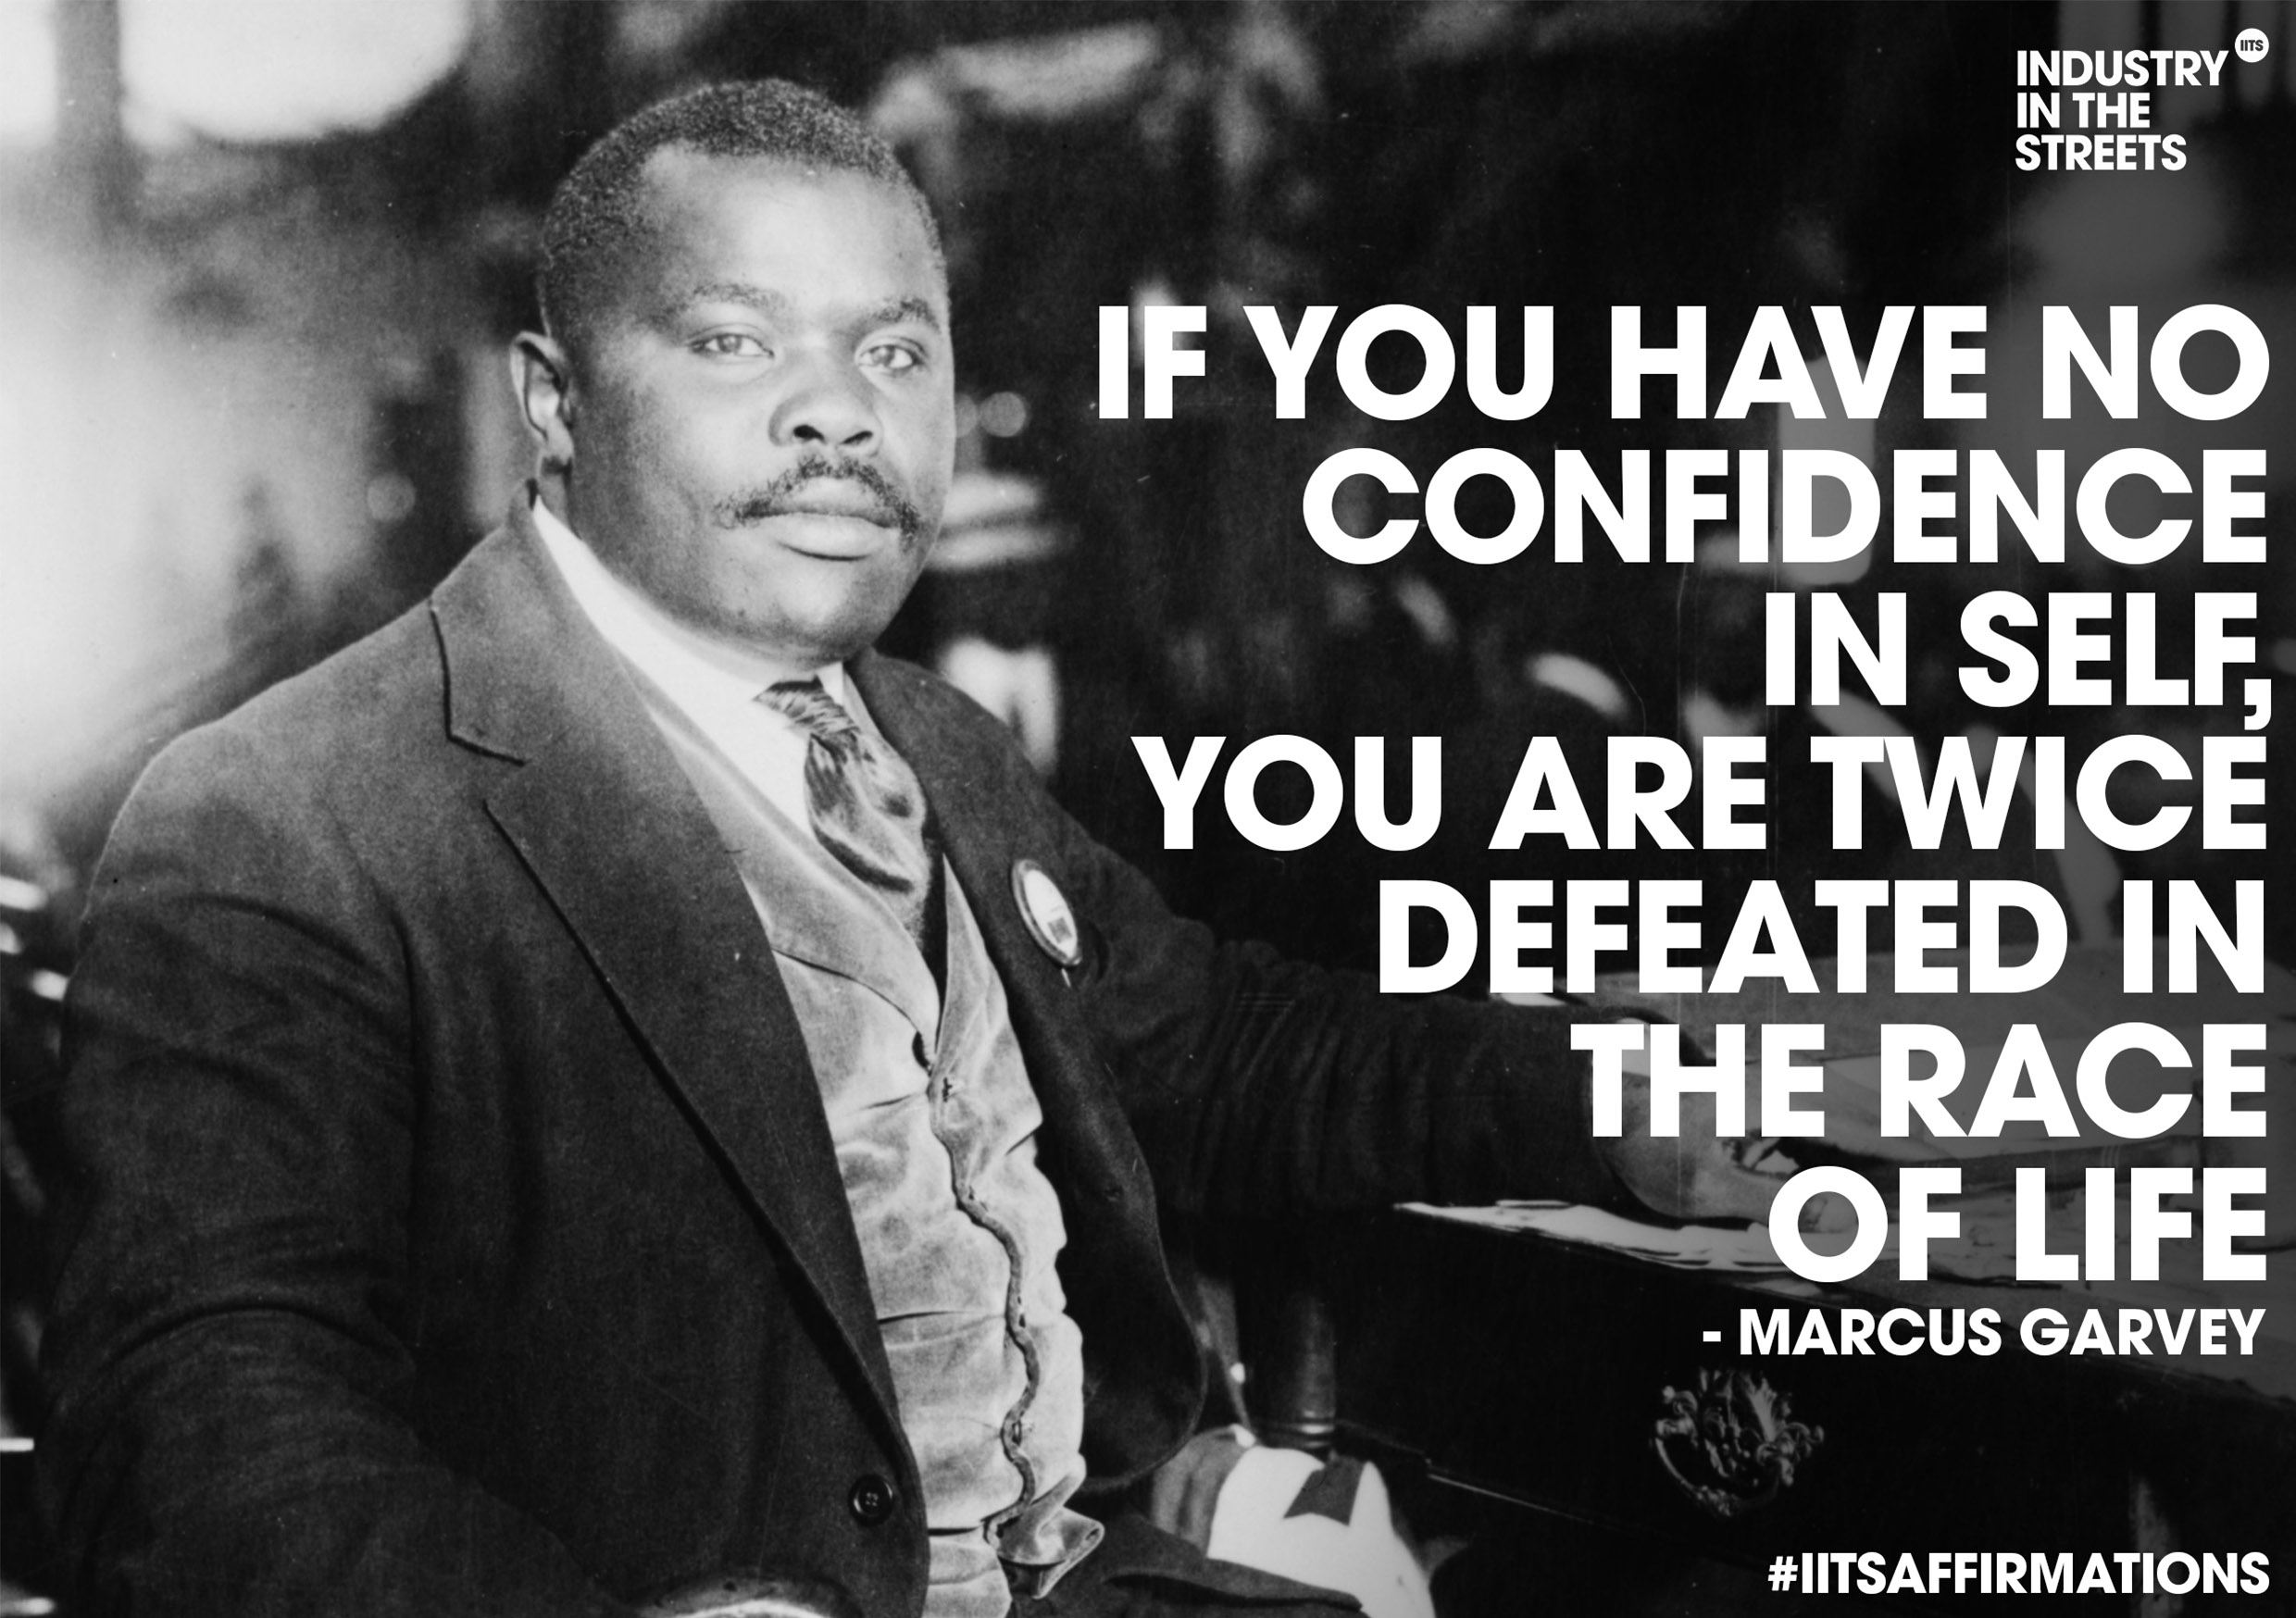 MARCUS-GARVEY-FOR-SITE